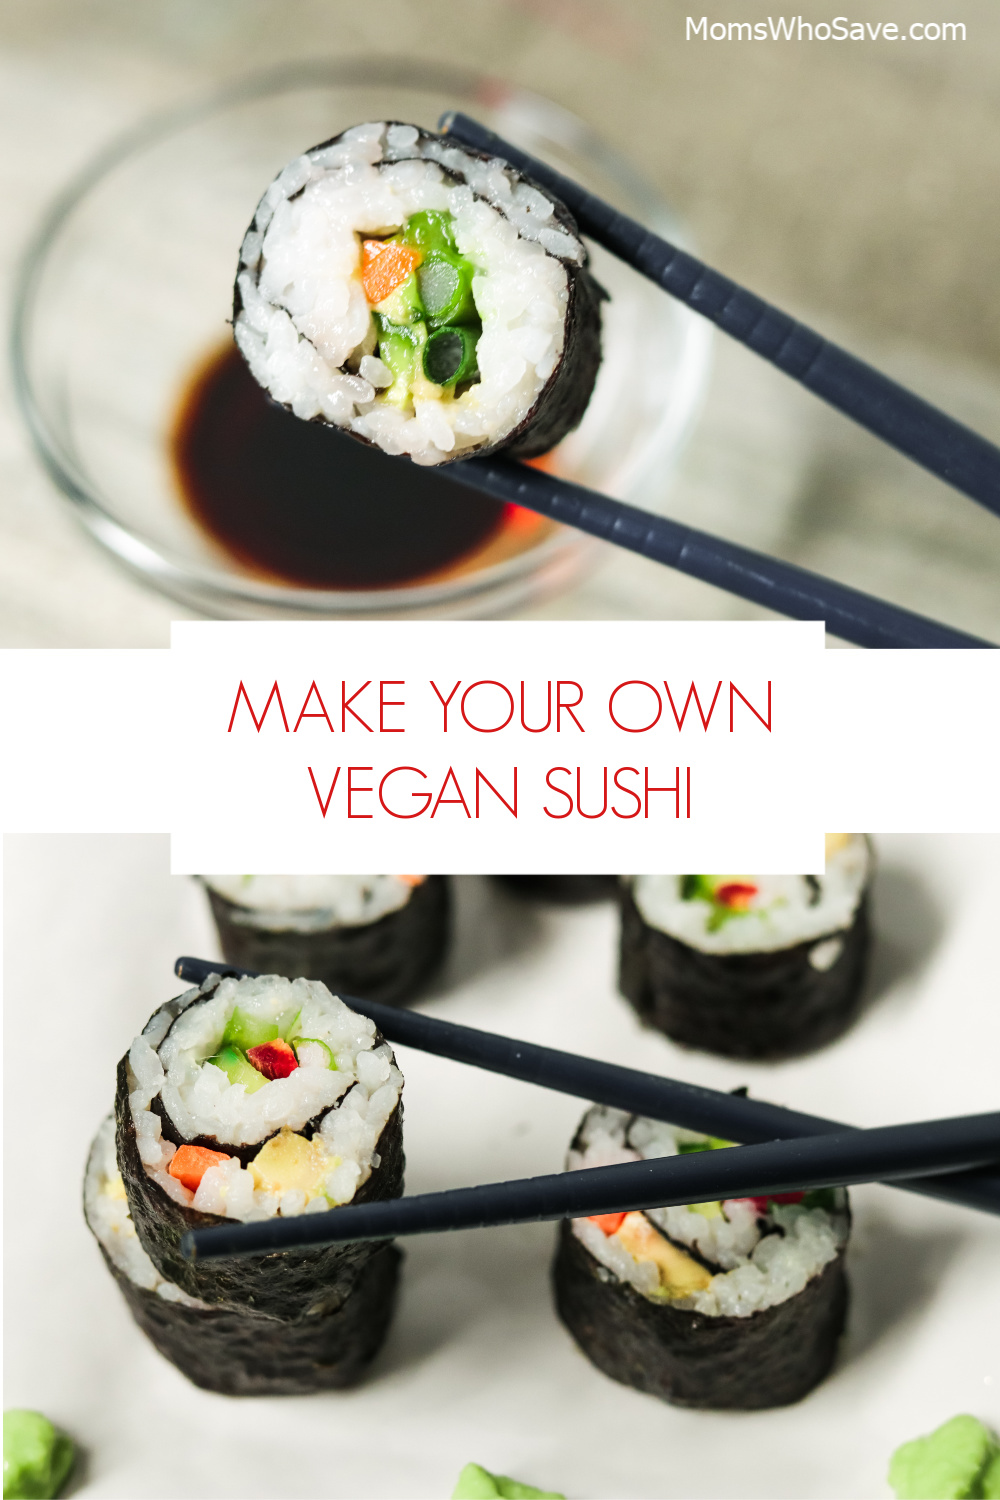 what's in vegan sushi